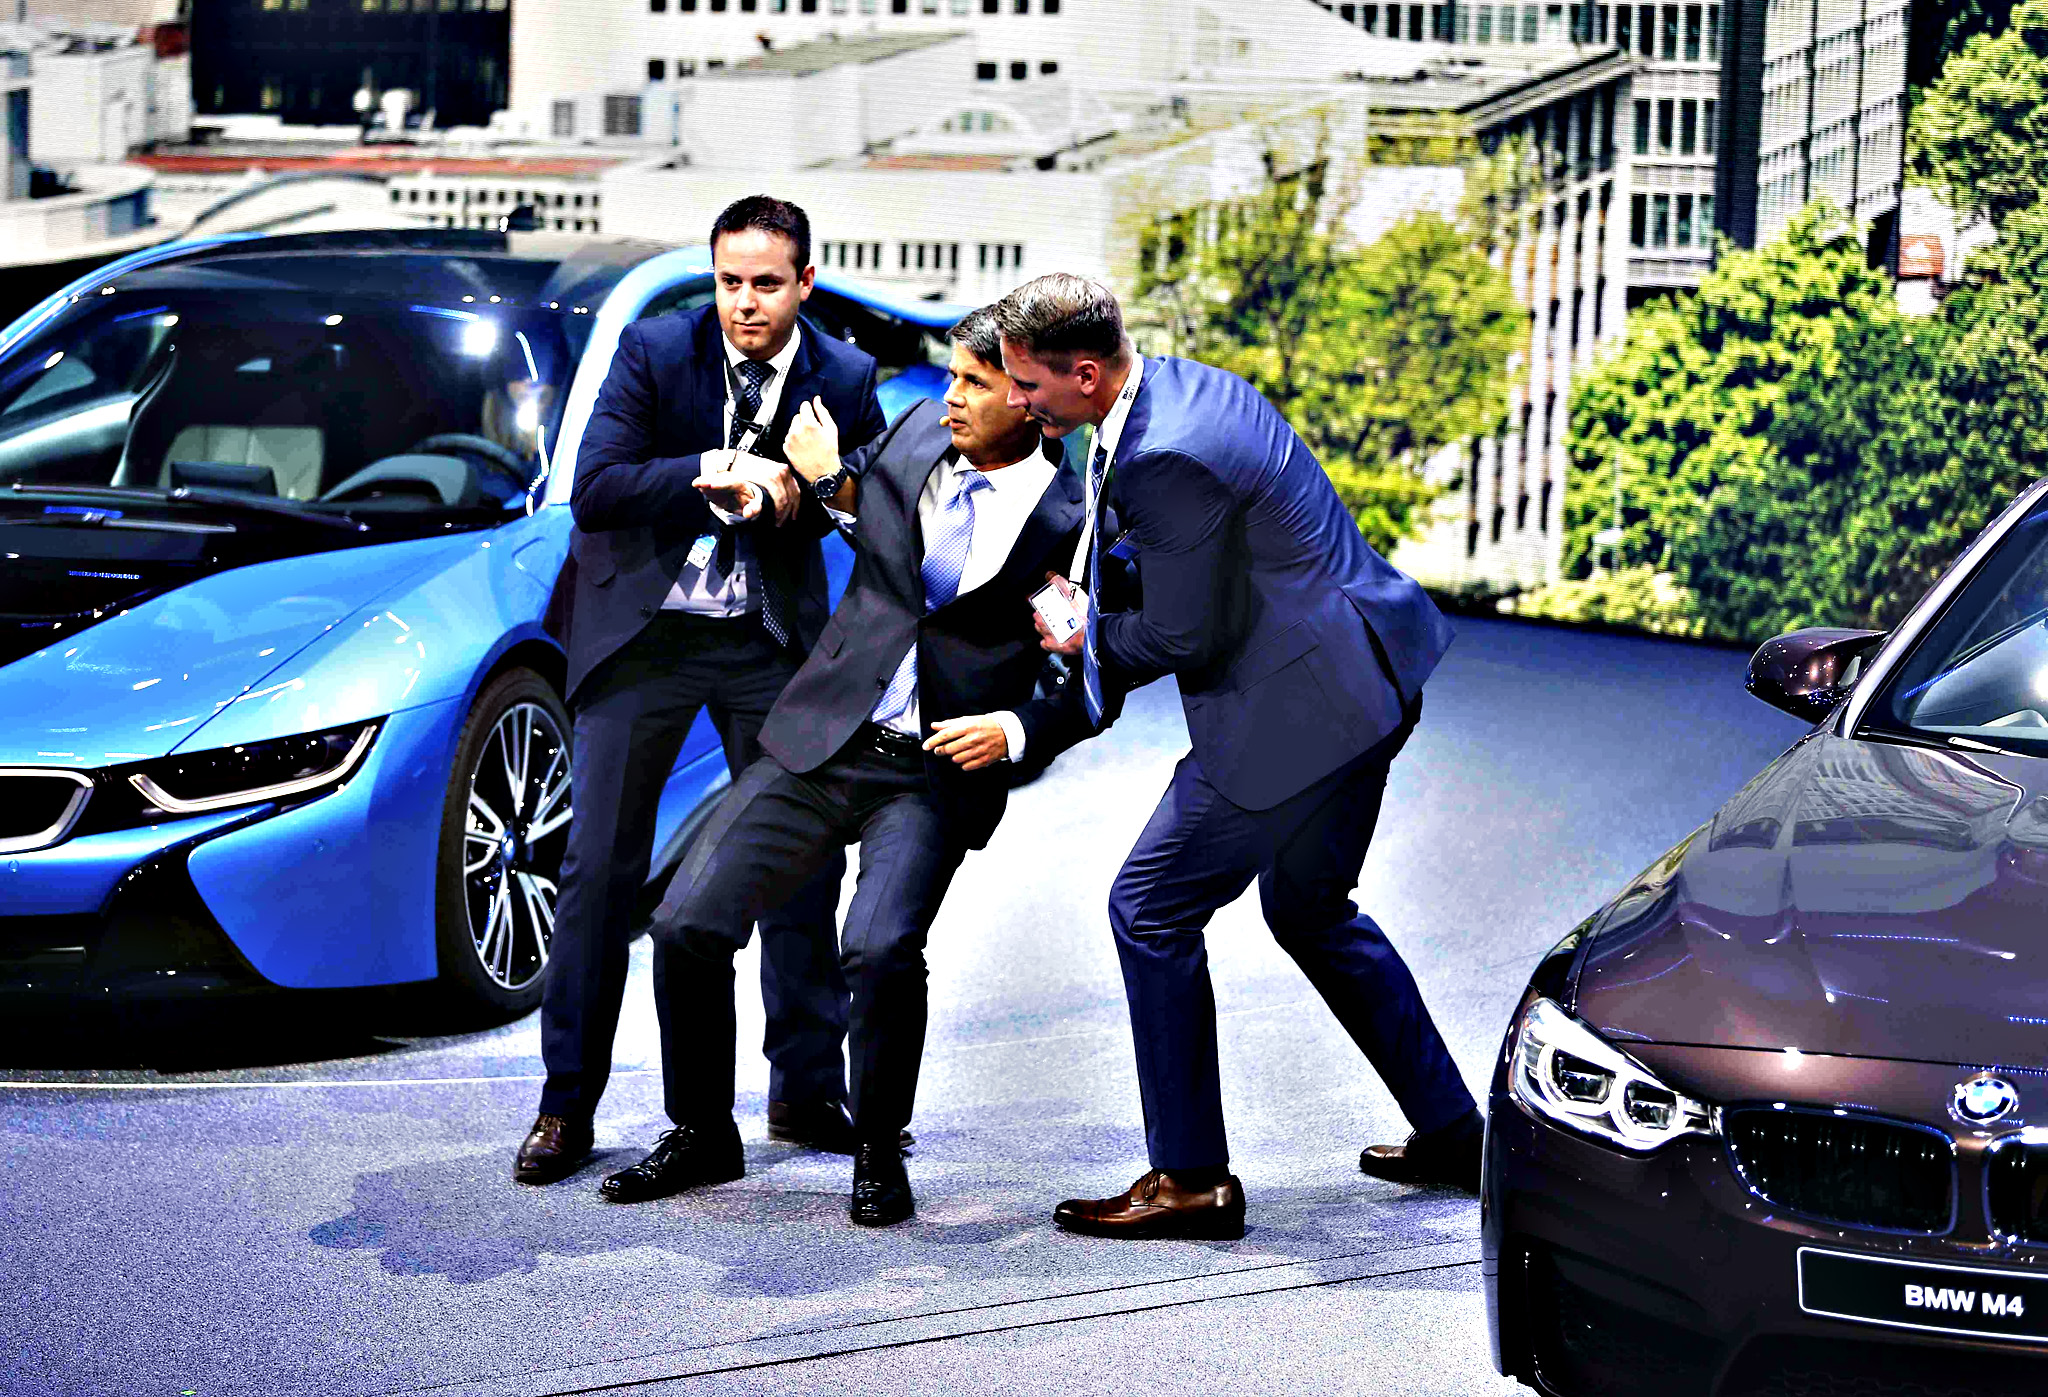 BMW CEO Krueger is helped after he collapsed at a presentation during the media day at the Frankfurt Motor Show (IAA) in Frankfurt...BMW CEO Harald Krueger (C) is helped after he collapsed at a presentation during the media day at the Frankfurt Motor Show (IAA) in Frankfurt, Germany, September 15, 2015.